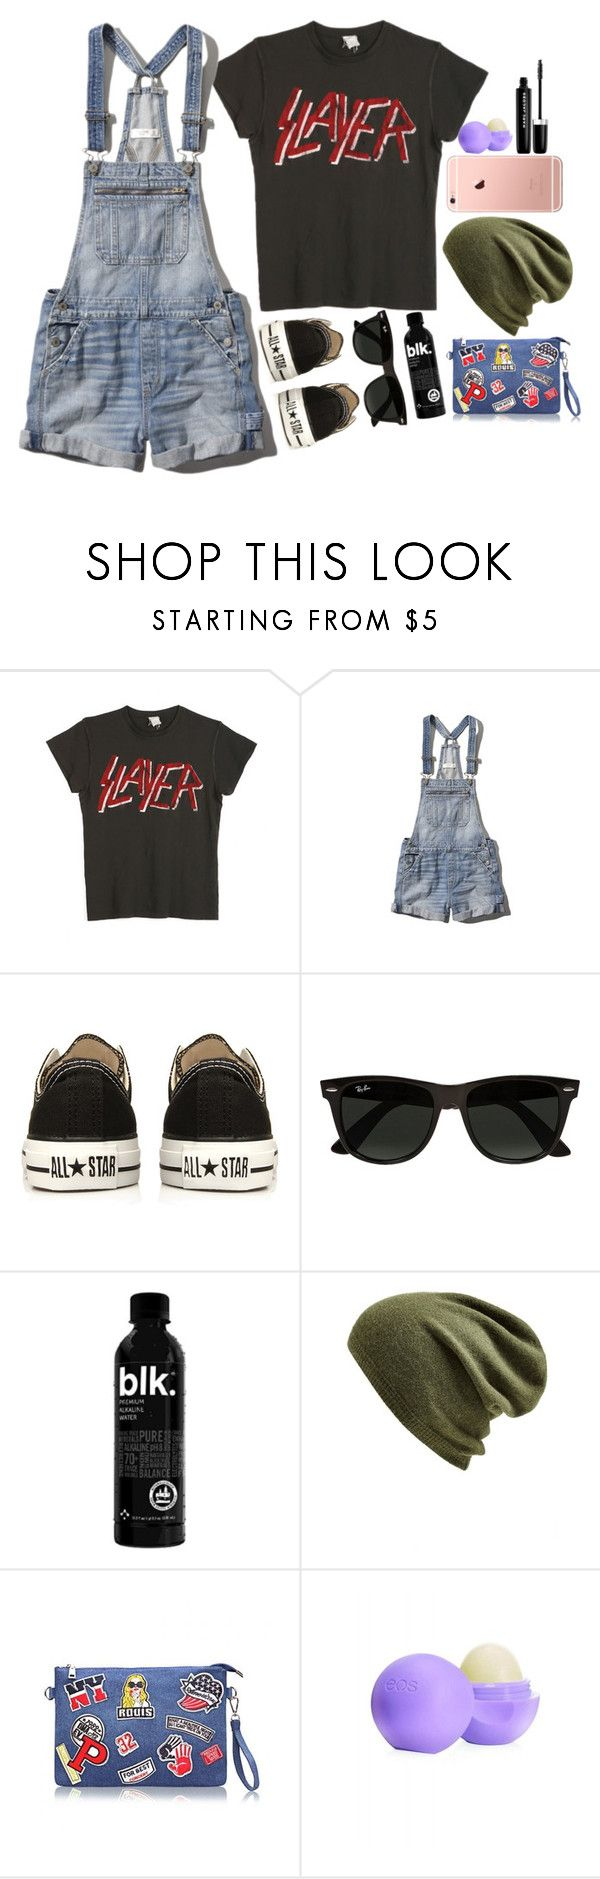 """""""100 Day Challenge! Day 3: Day around town"""" by cosmic-calum ❤ liked on Polyvore featuring MadeWorn, Abercrombie & Fitch, Converse, Ray-Ban, Echo, Eos and Marc Jacobs"""